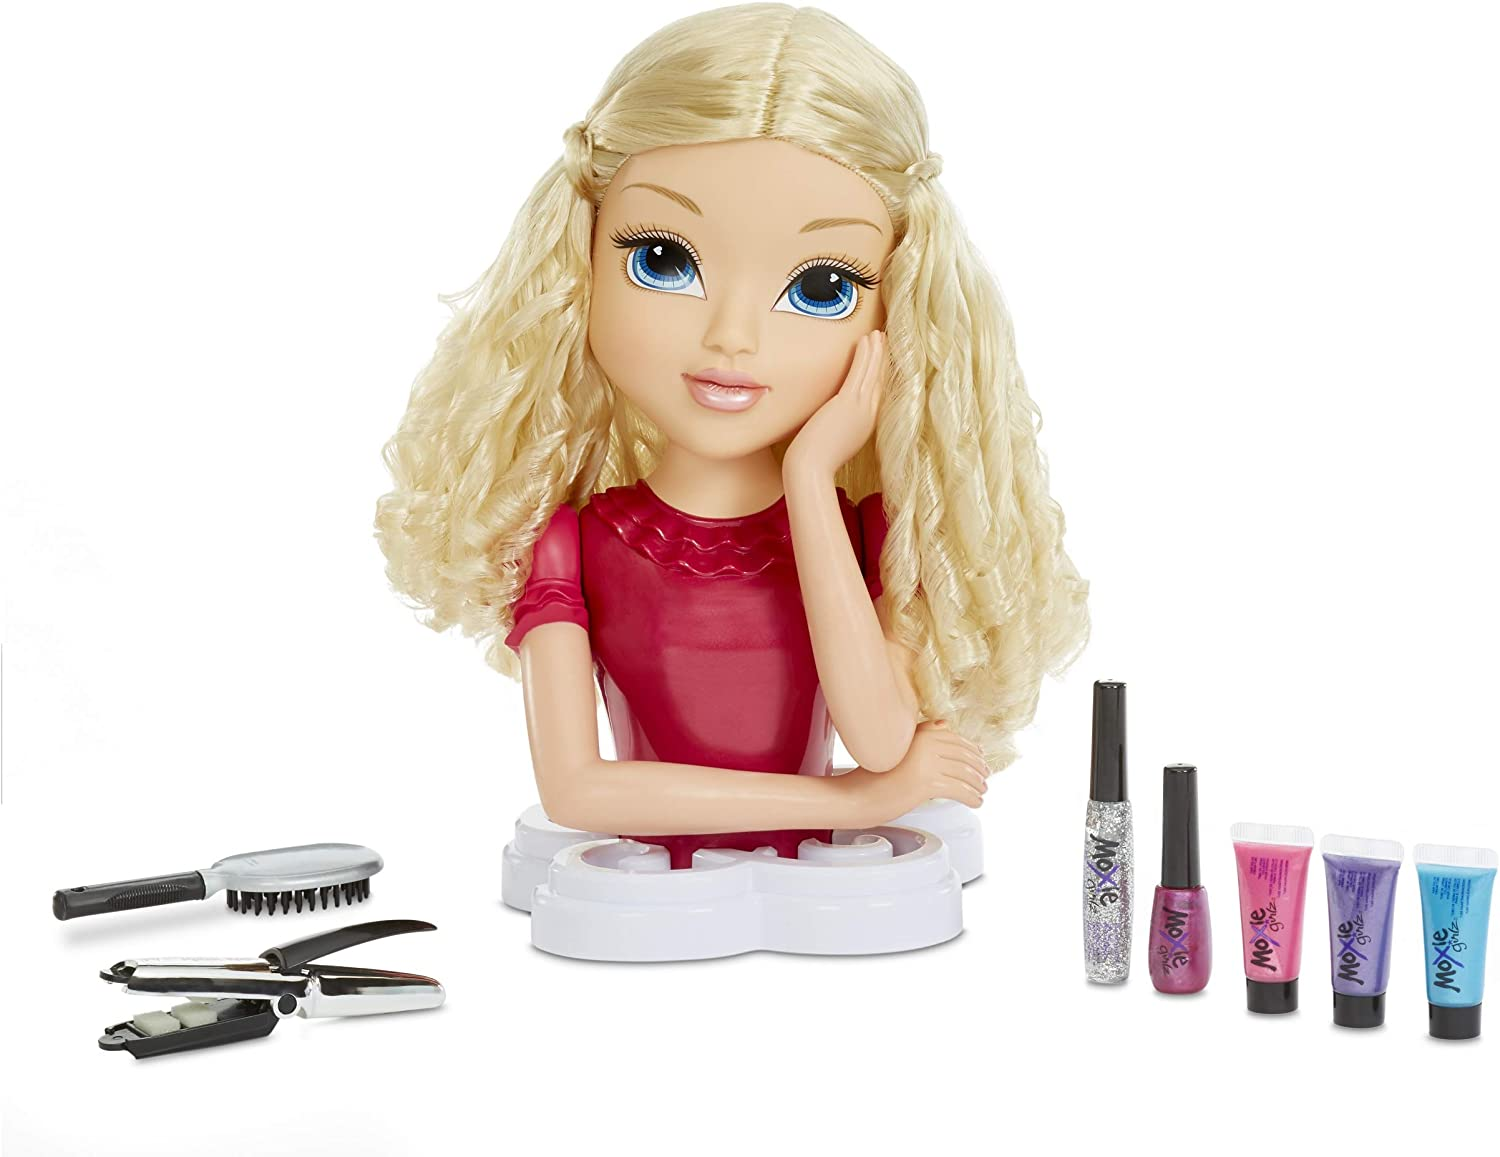 Moxie Girlz Magic Hair Makeover Avery 4-in-1 Styling Head